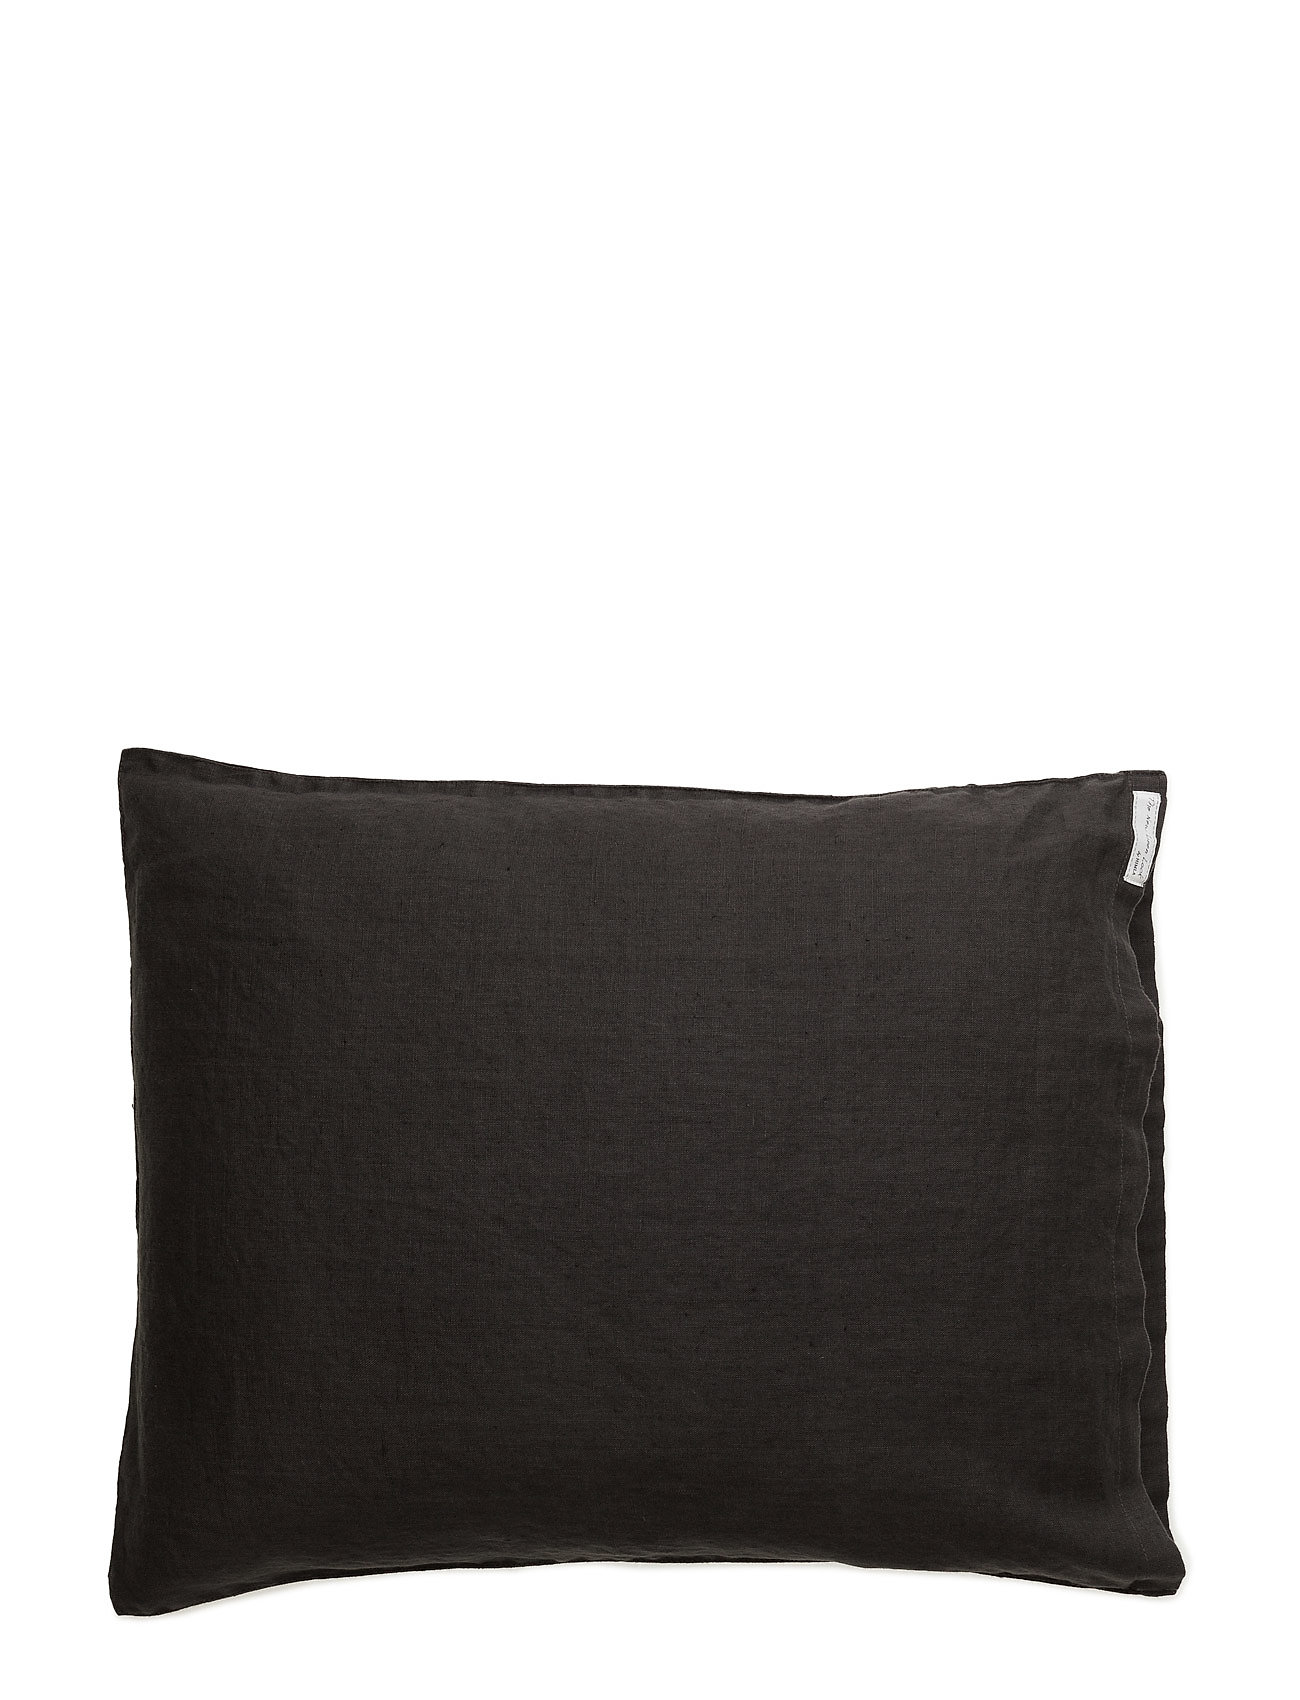 Himla Sunshine Pillowcase - KOHL